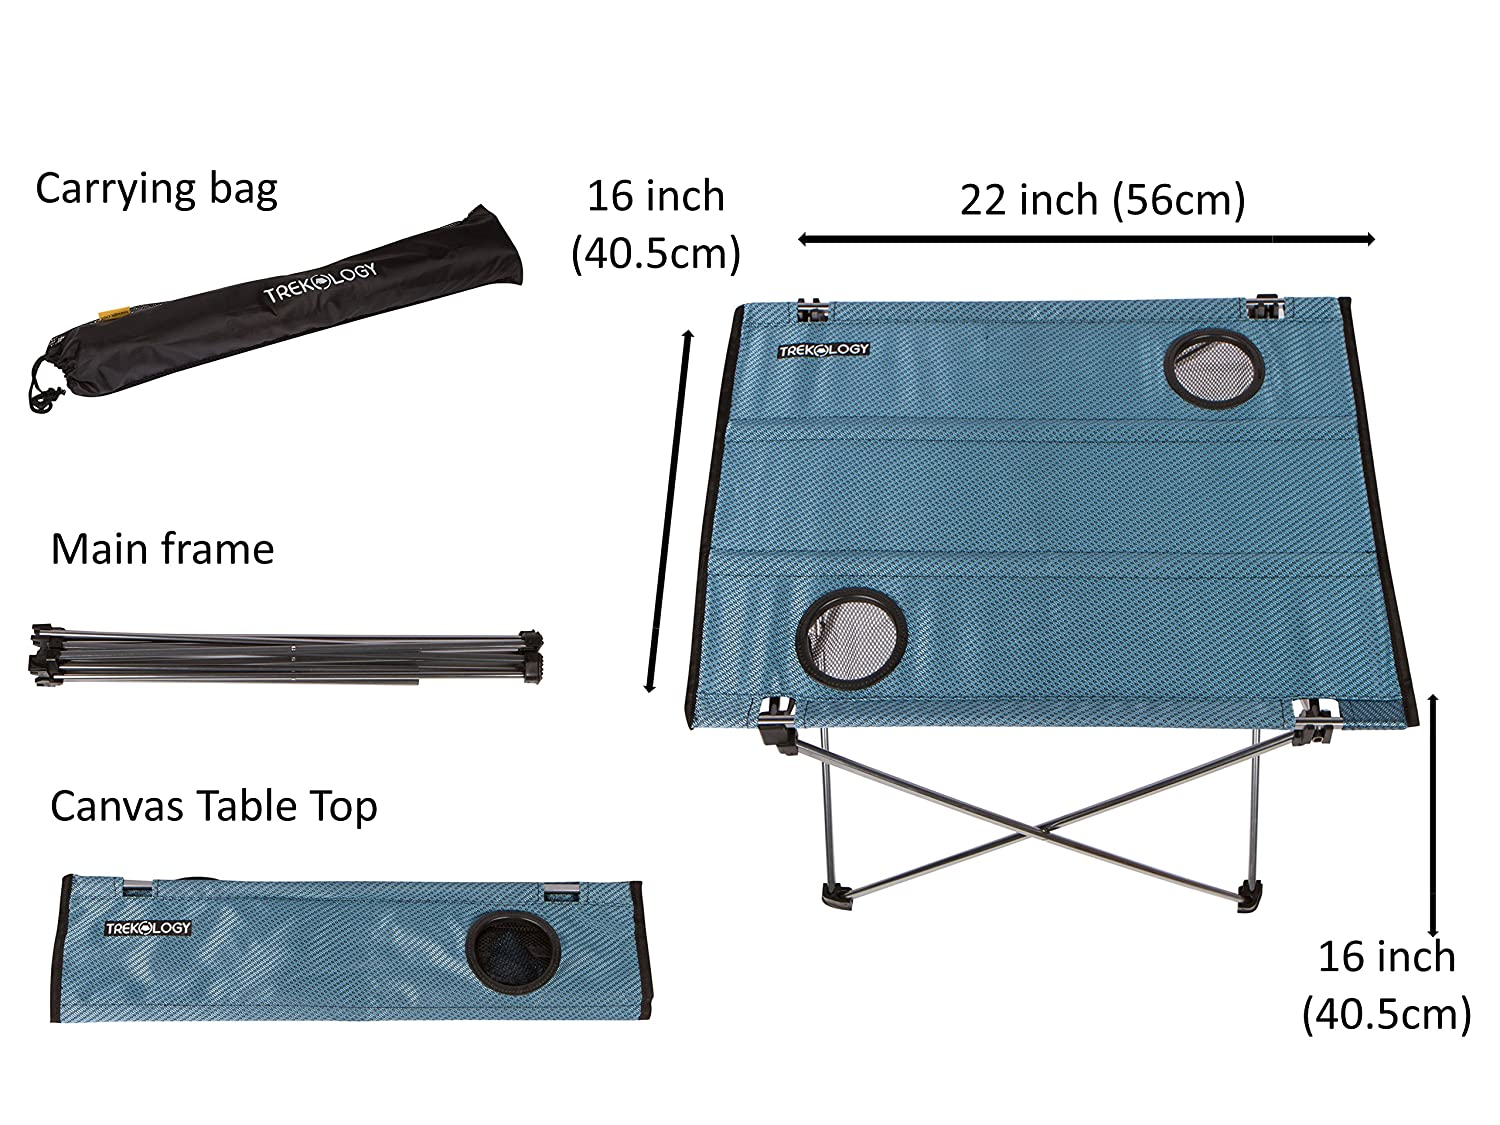 Beach Light Easy to Carry Camp Trekology Foldable Camping Picnic Tables Outdoor Small Portable Compact Lightweight Folding Roll-up Table in a Bag